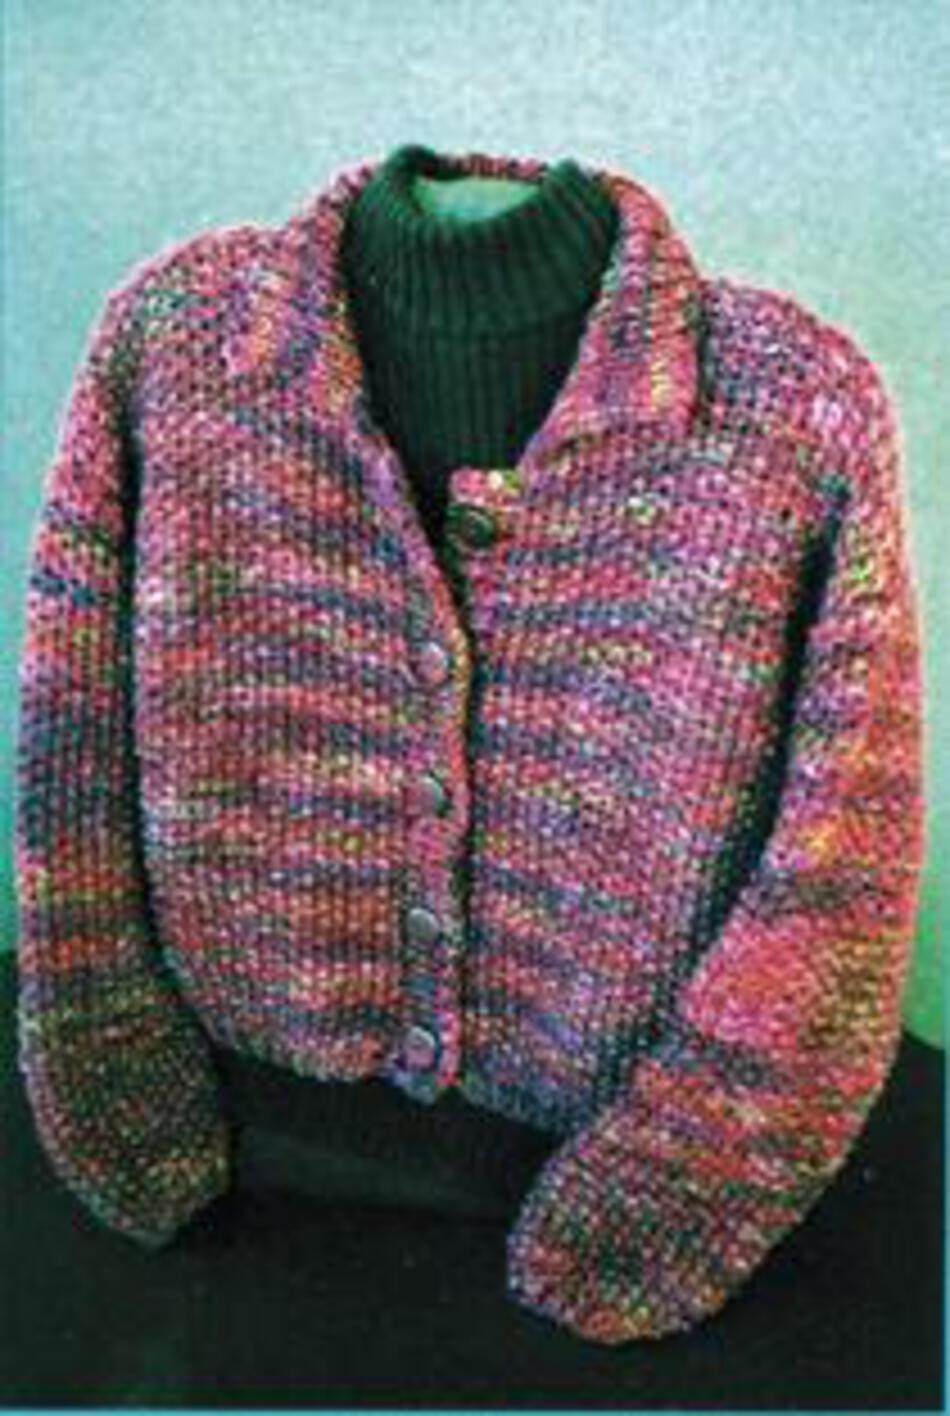 Knitting Patterns Fiber Trends  Simply Seed Jacket